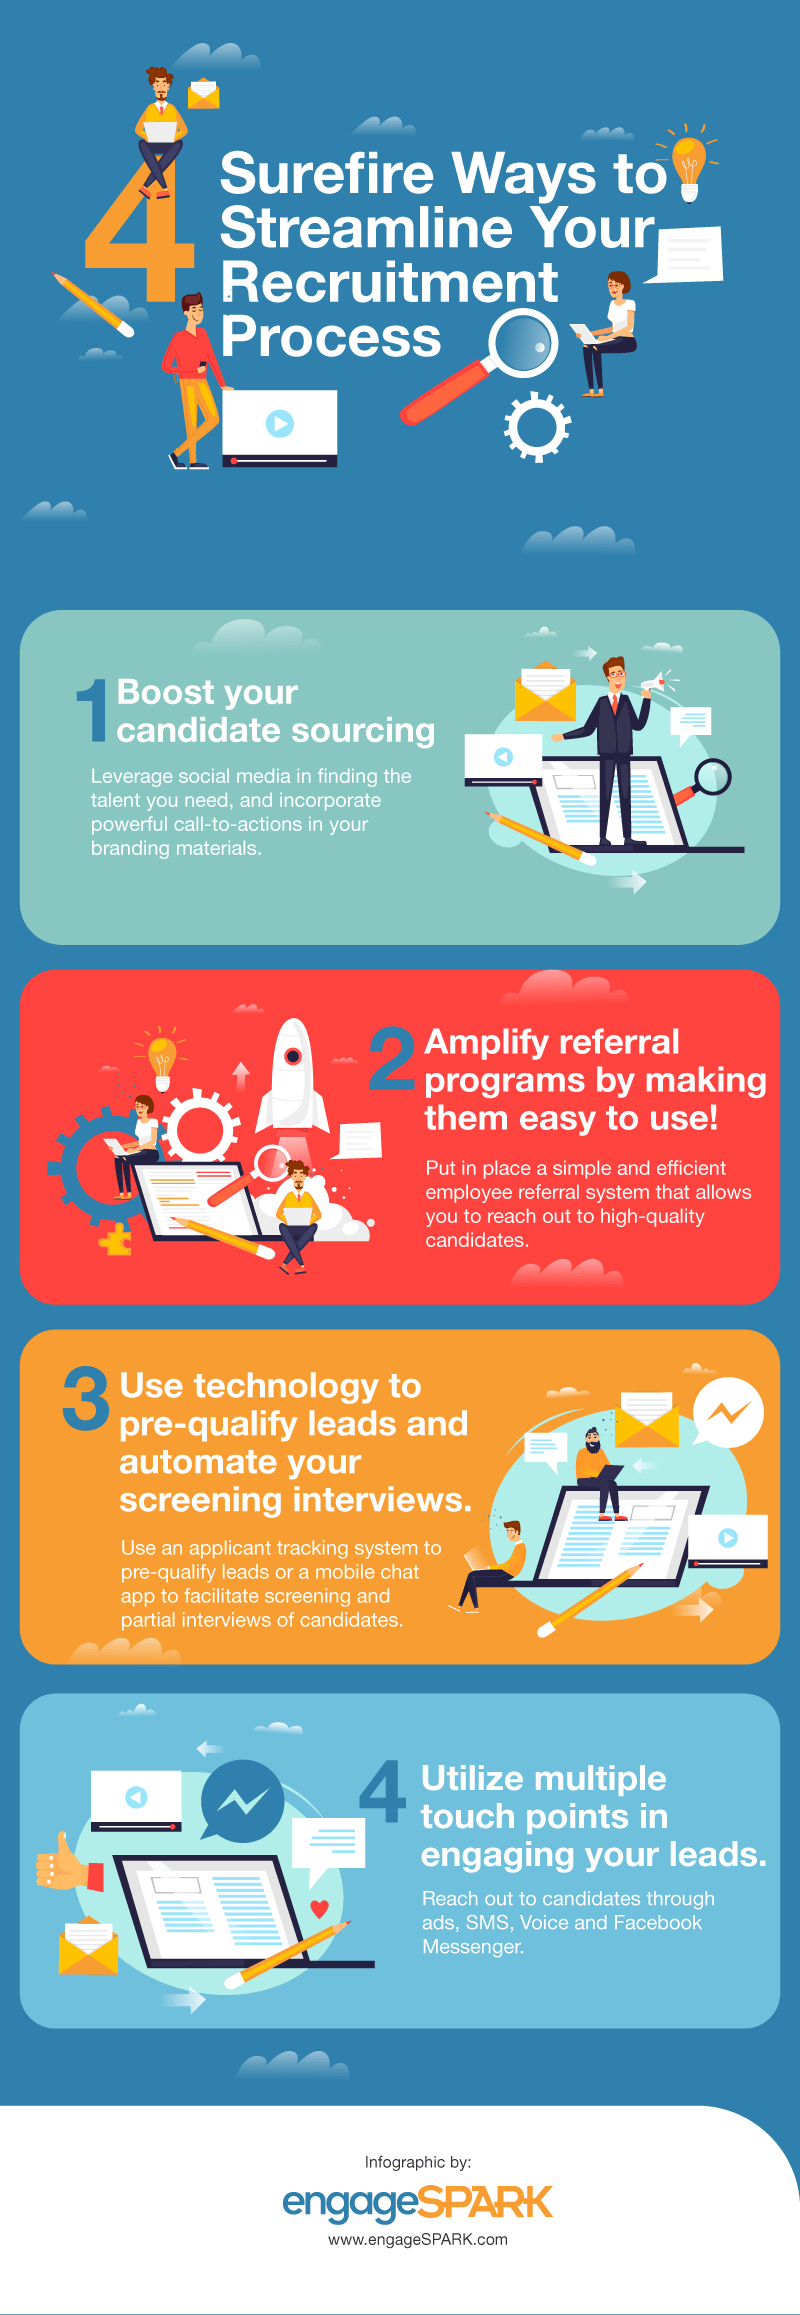 4 Surefire Ways to Streamline Your Recruitment Process Infographic by engageSPARK